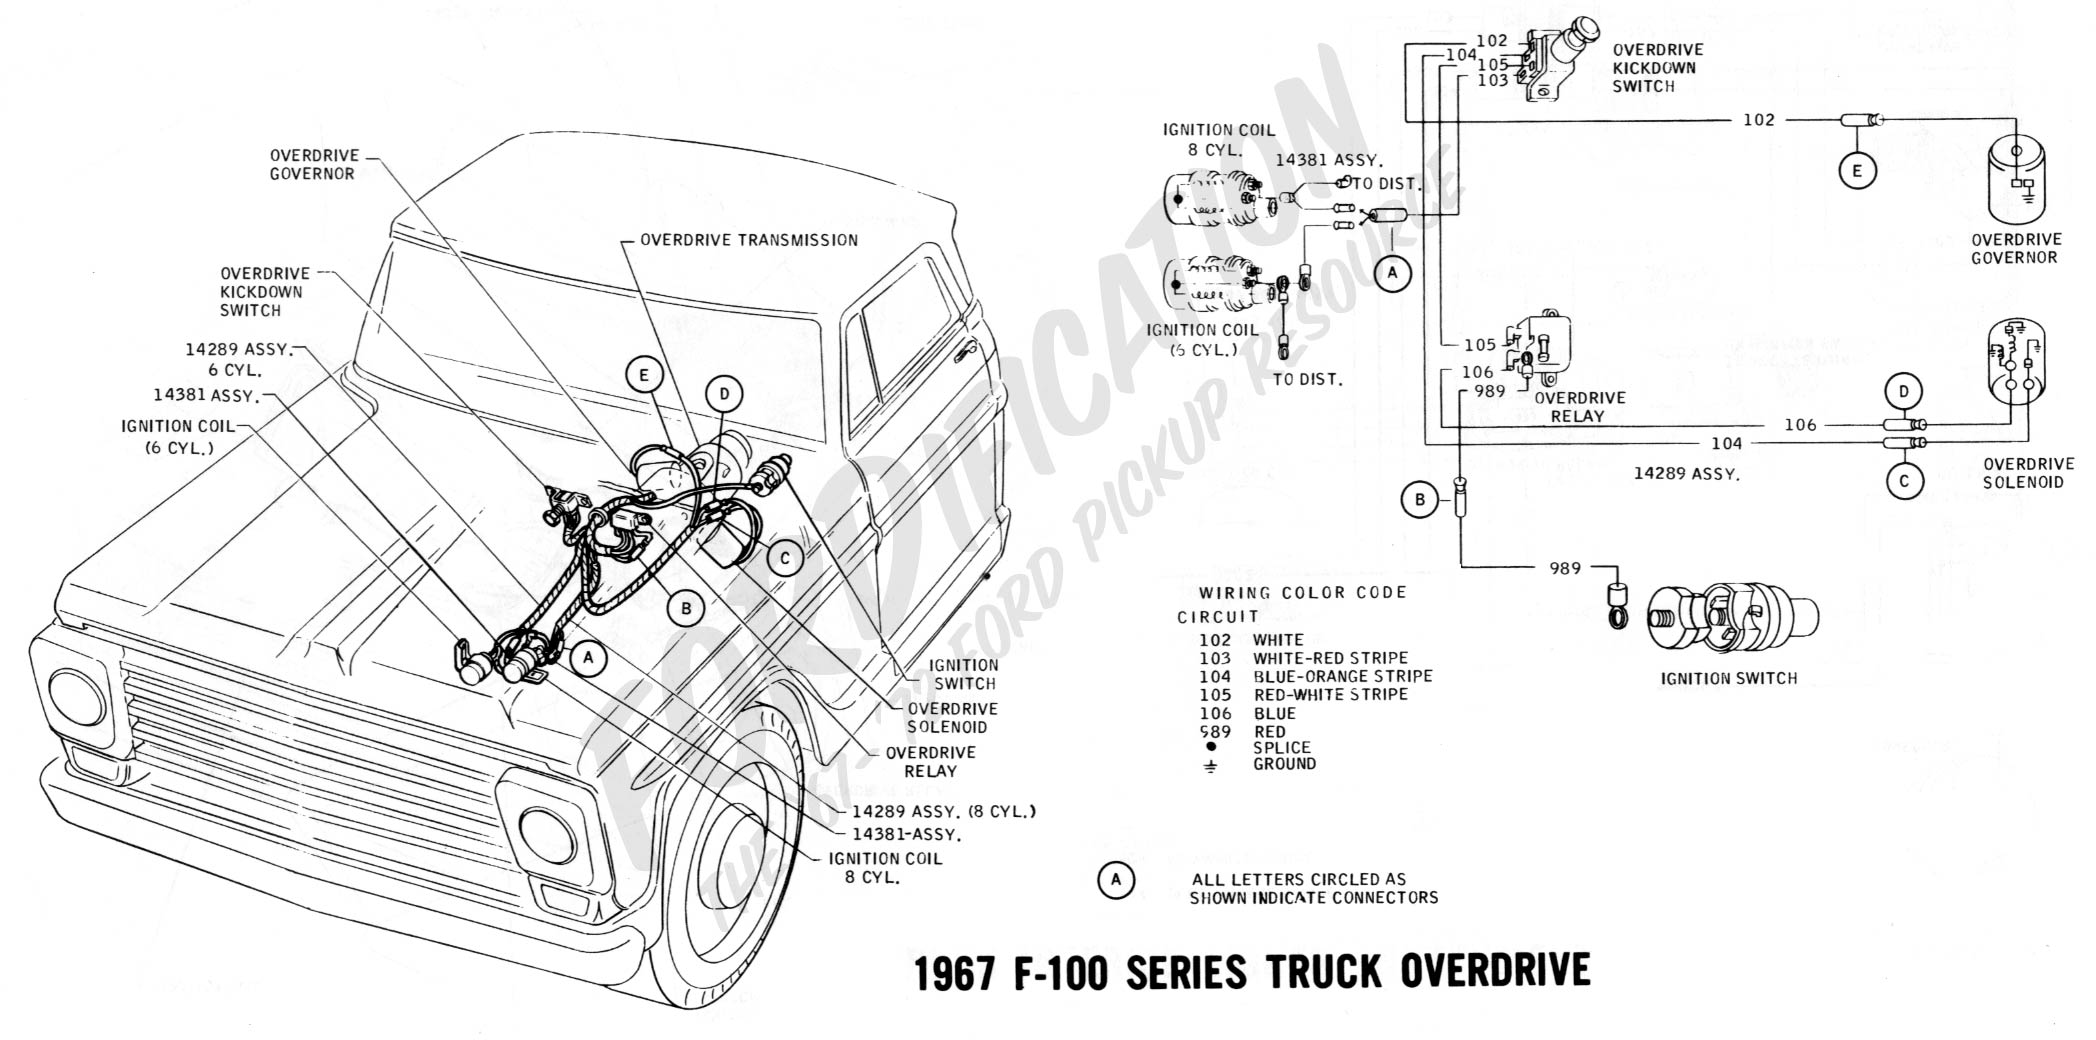 wiring 1967overdrive2 ford truck technical drawings and schematics section h wiring fuse panel diagram for 1999 ford f150 truck at eliteediting.co